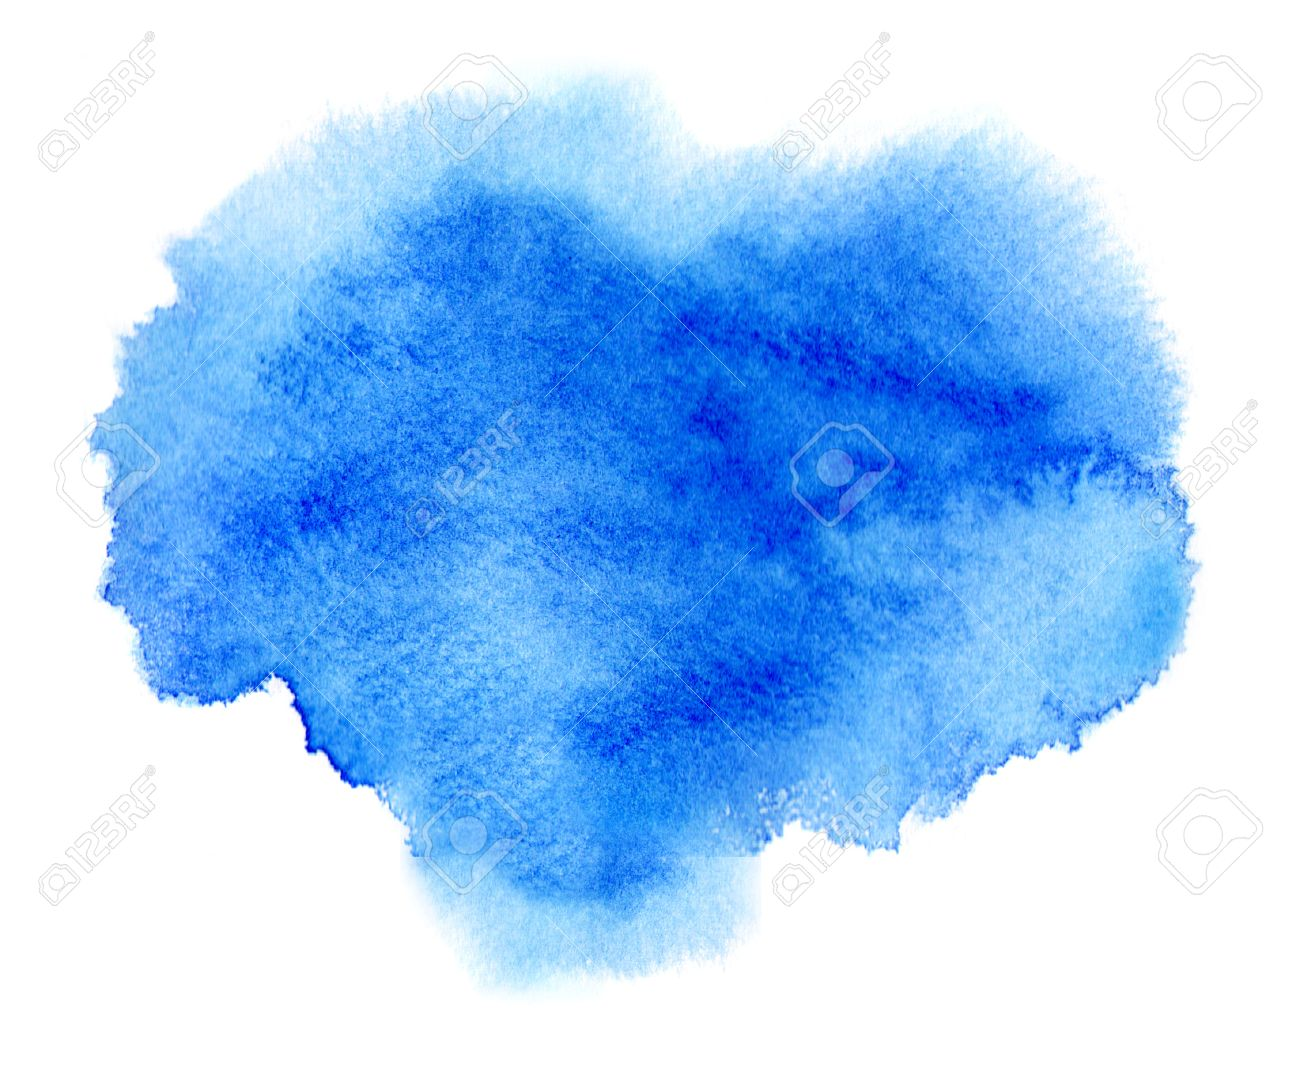 blue watercolor stain with